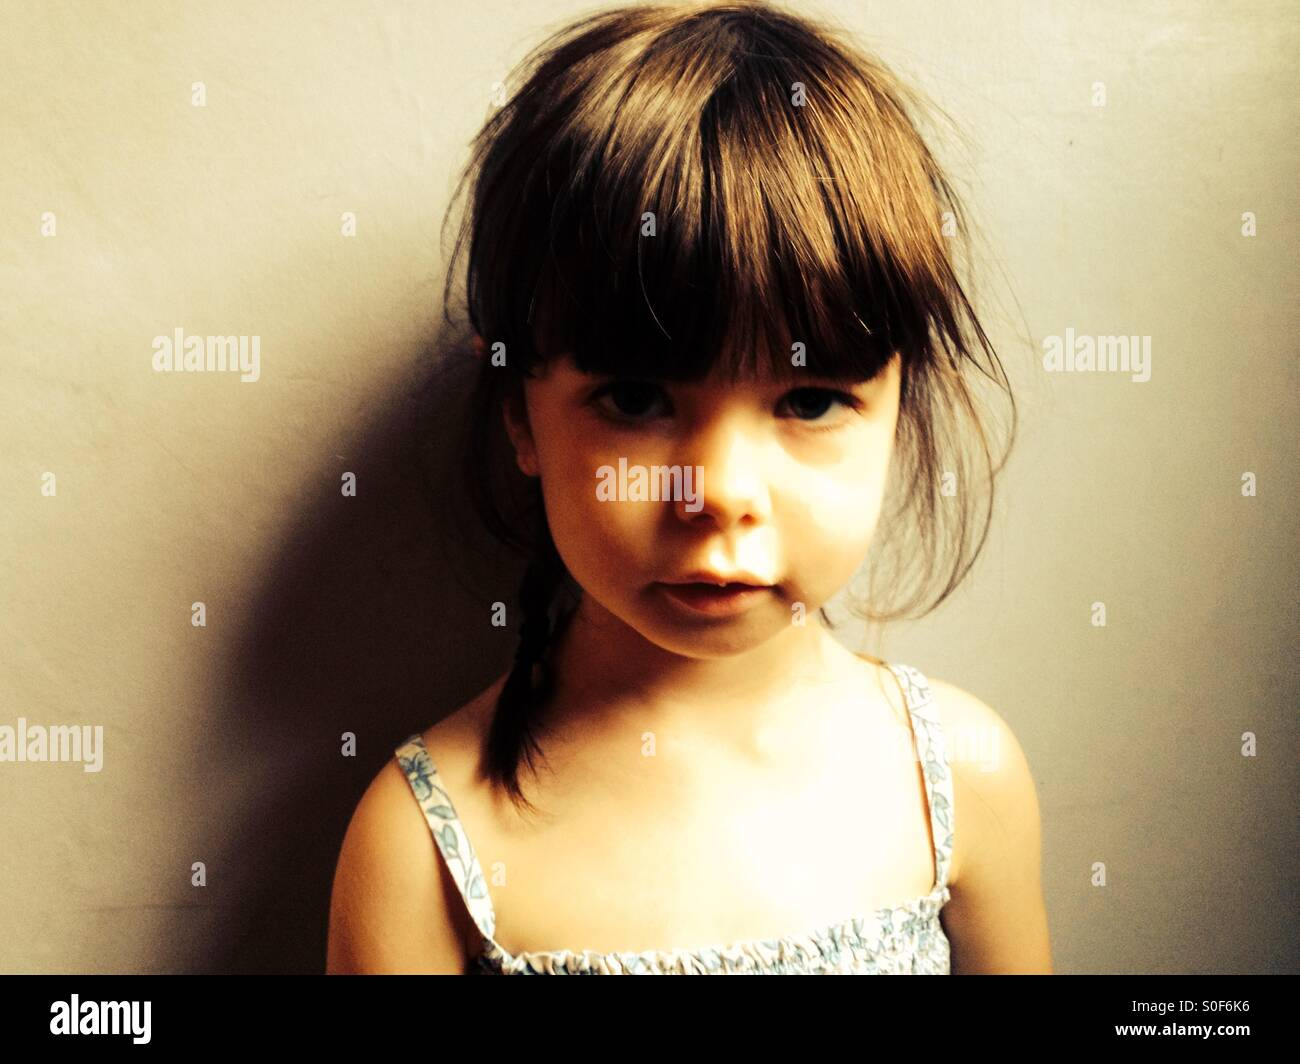 Malheureux 3-year old girl Photo Stock